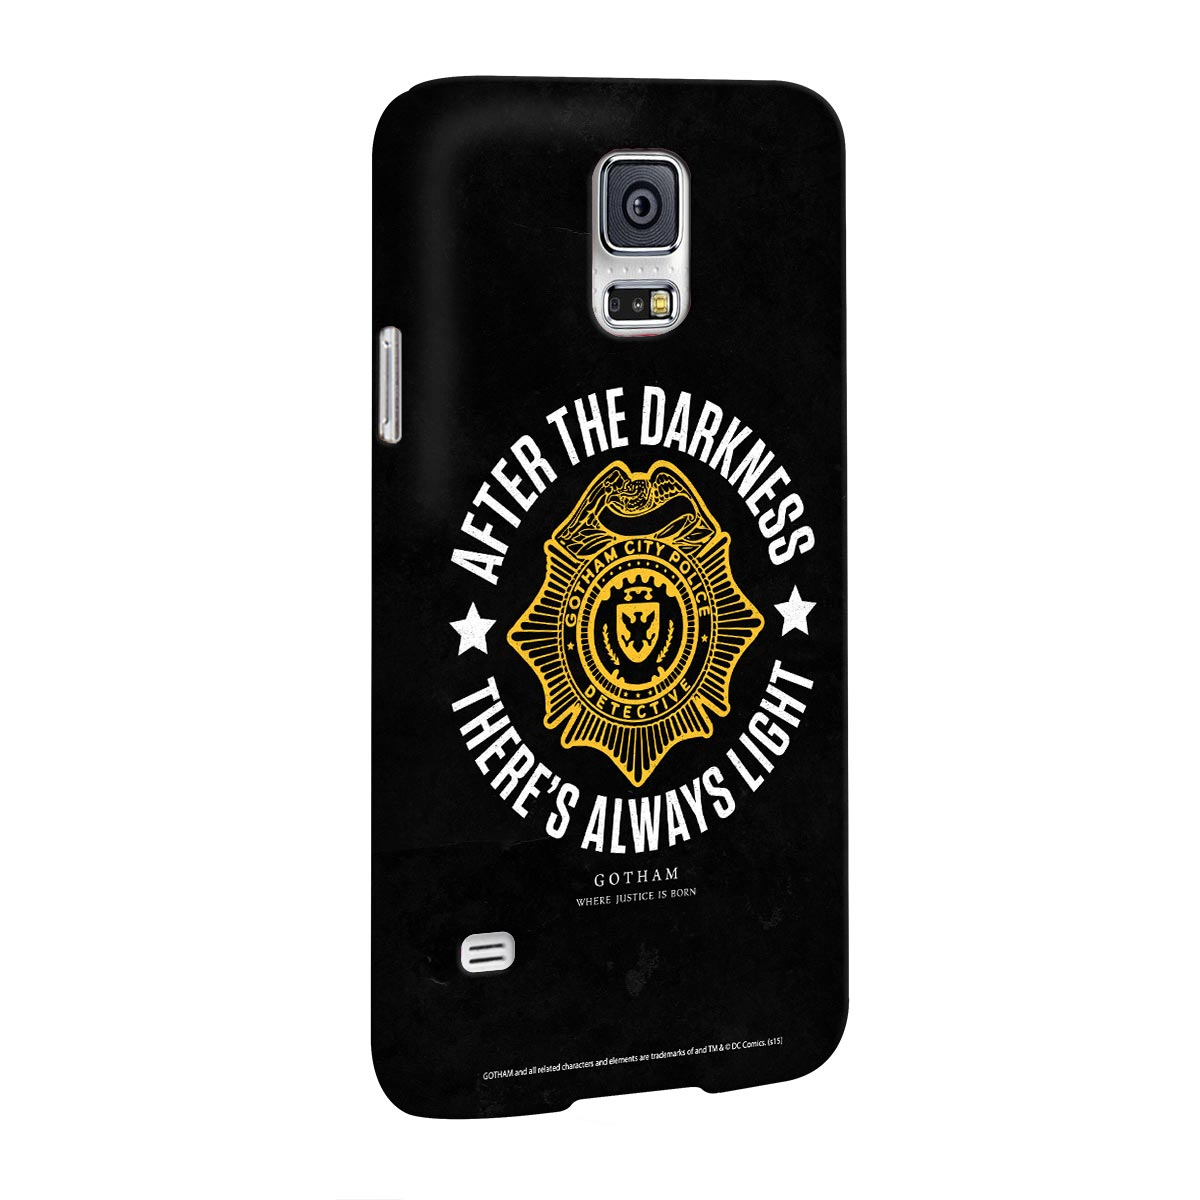 Capa para Samsung Galaxy S5 Gotham There´s Always Light